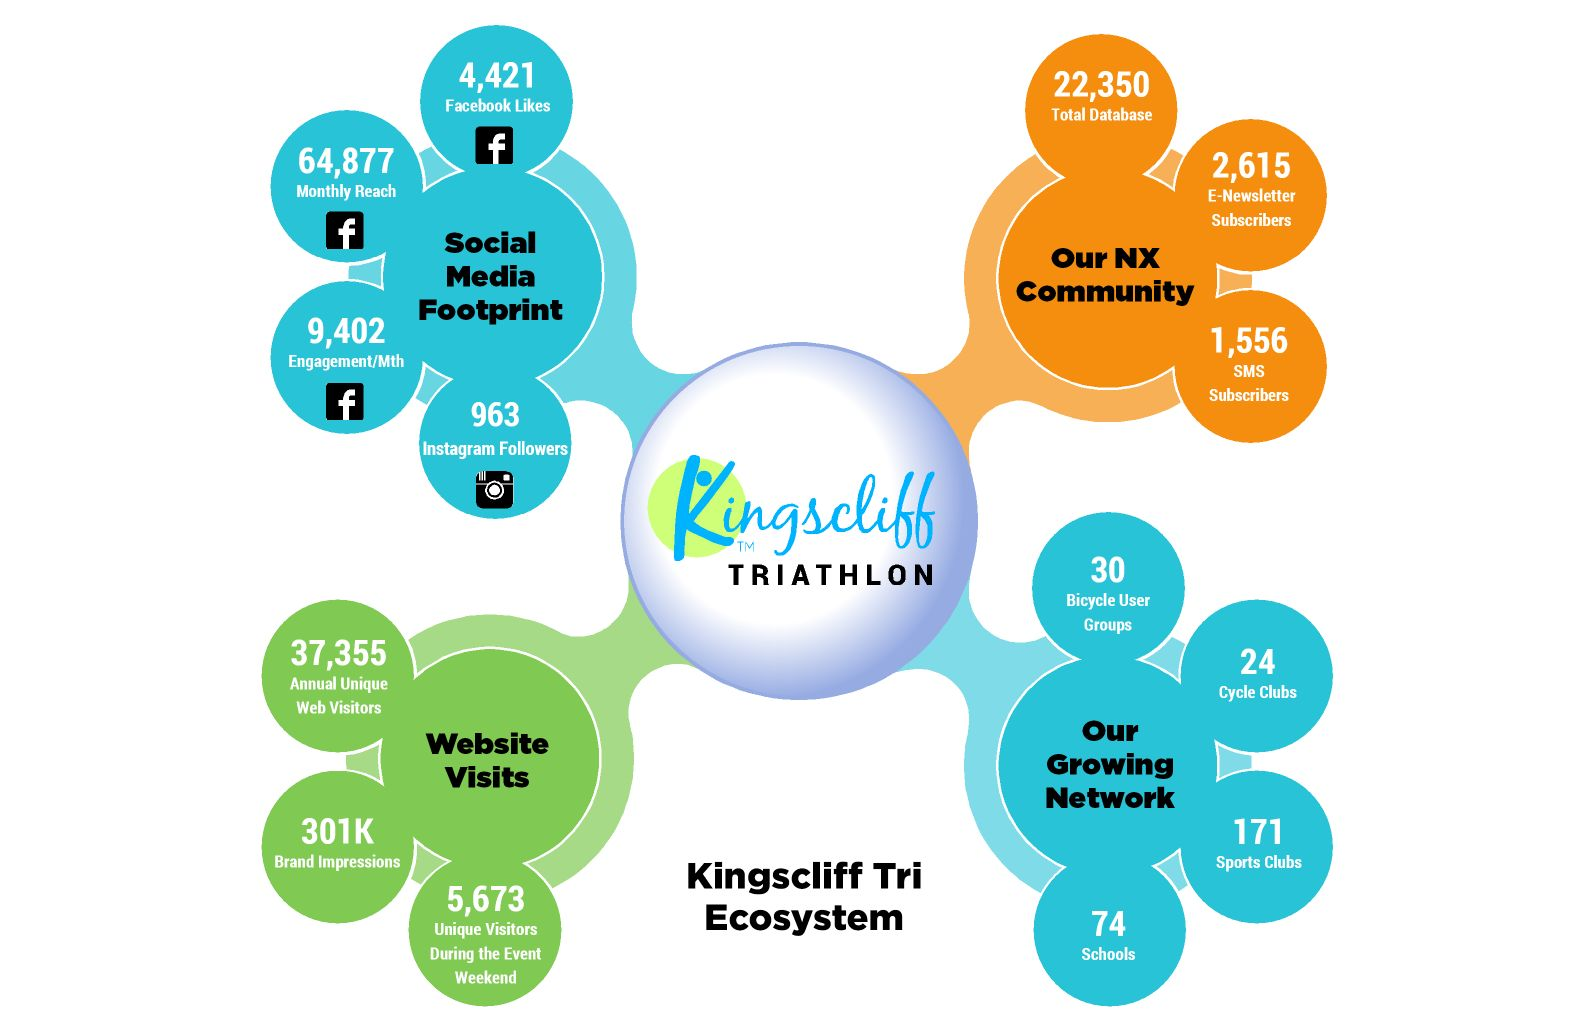 Kingscliff Triathlon Ecosystem